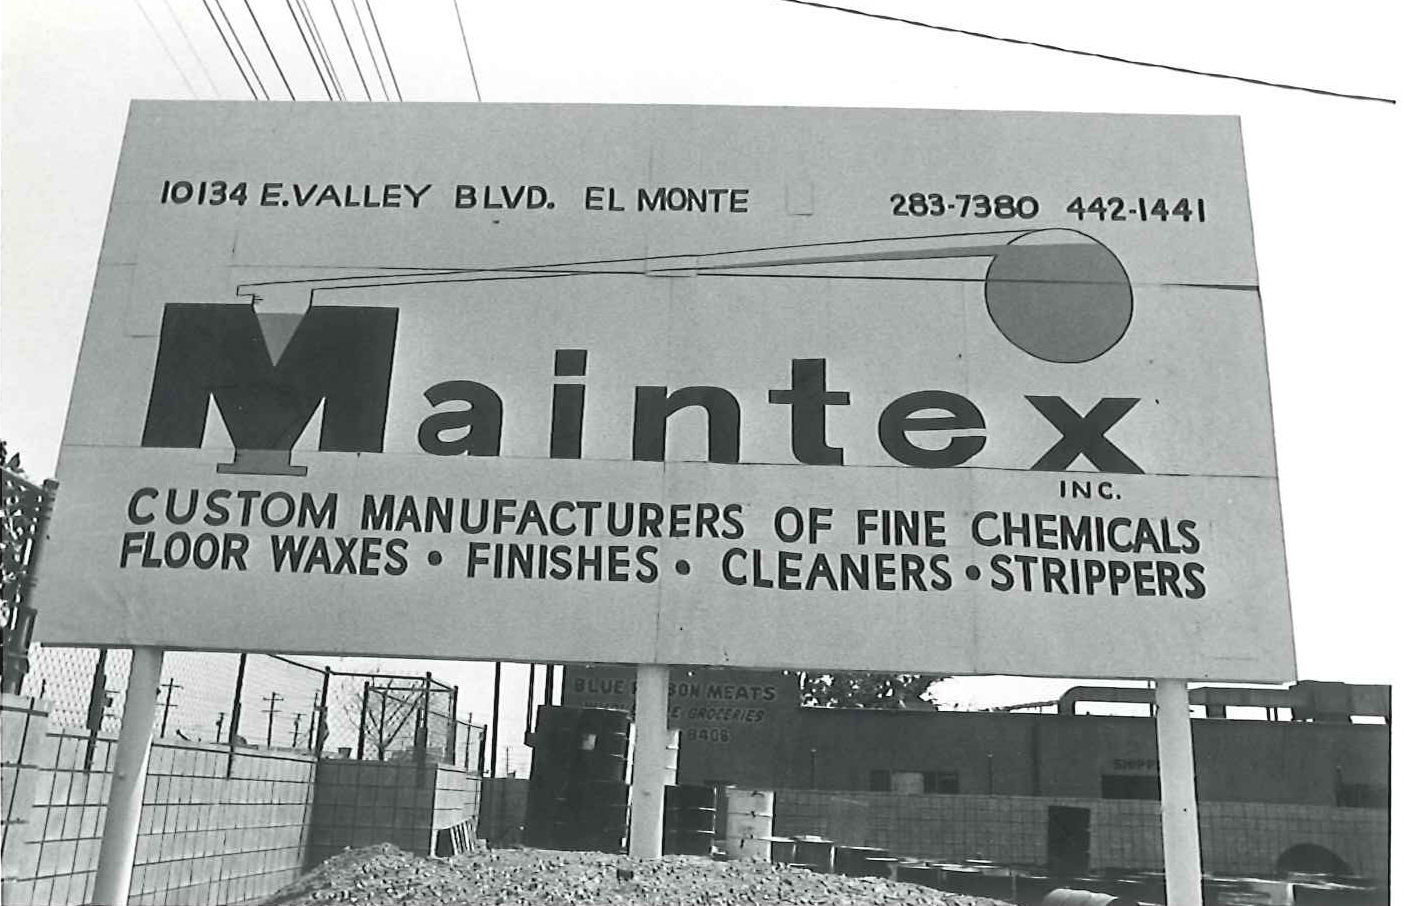 Old sign and logo